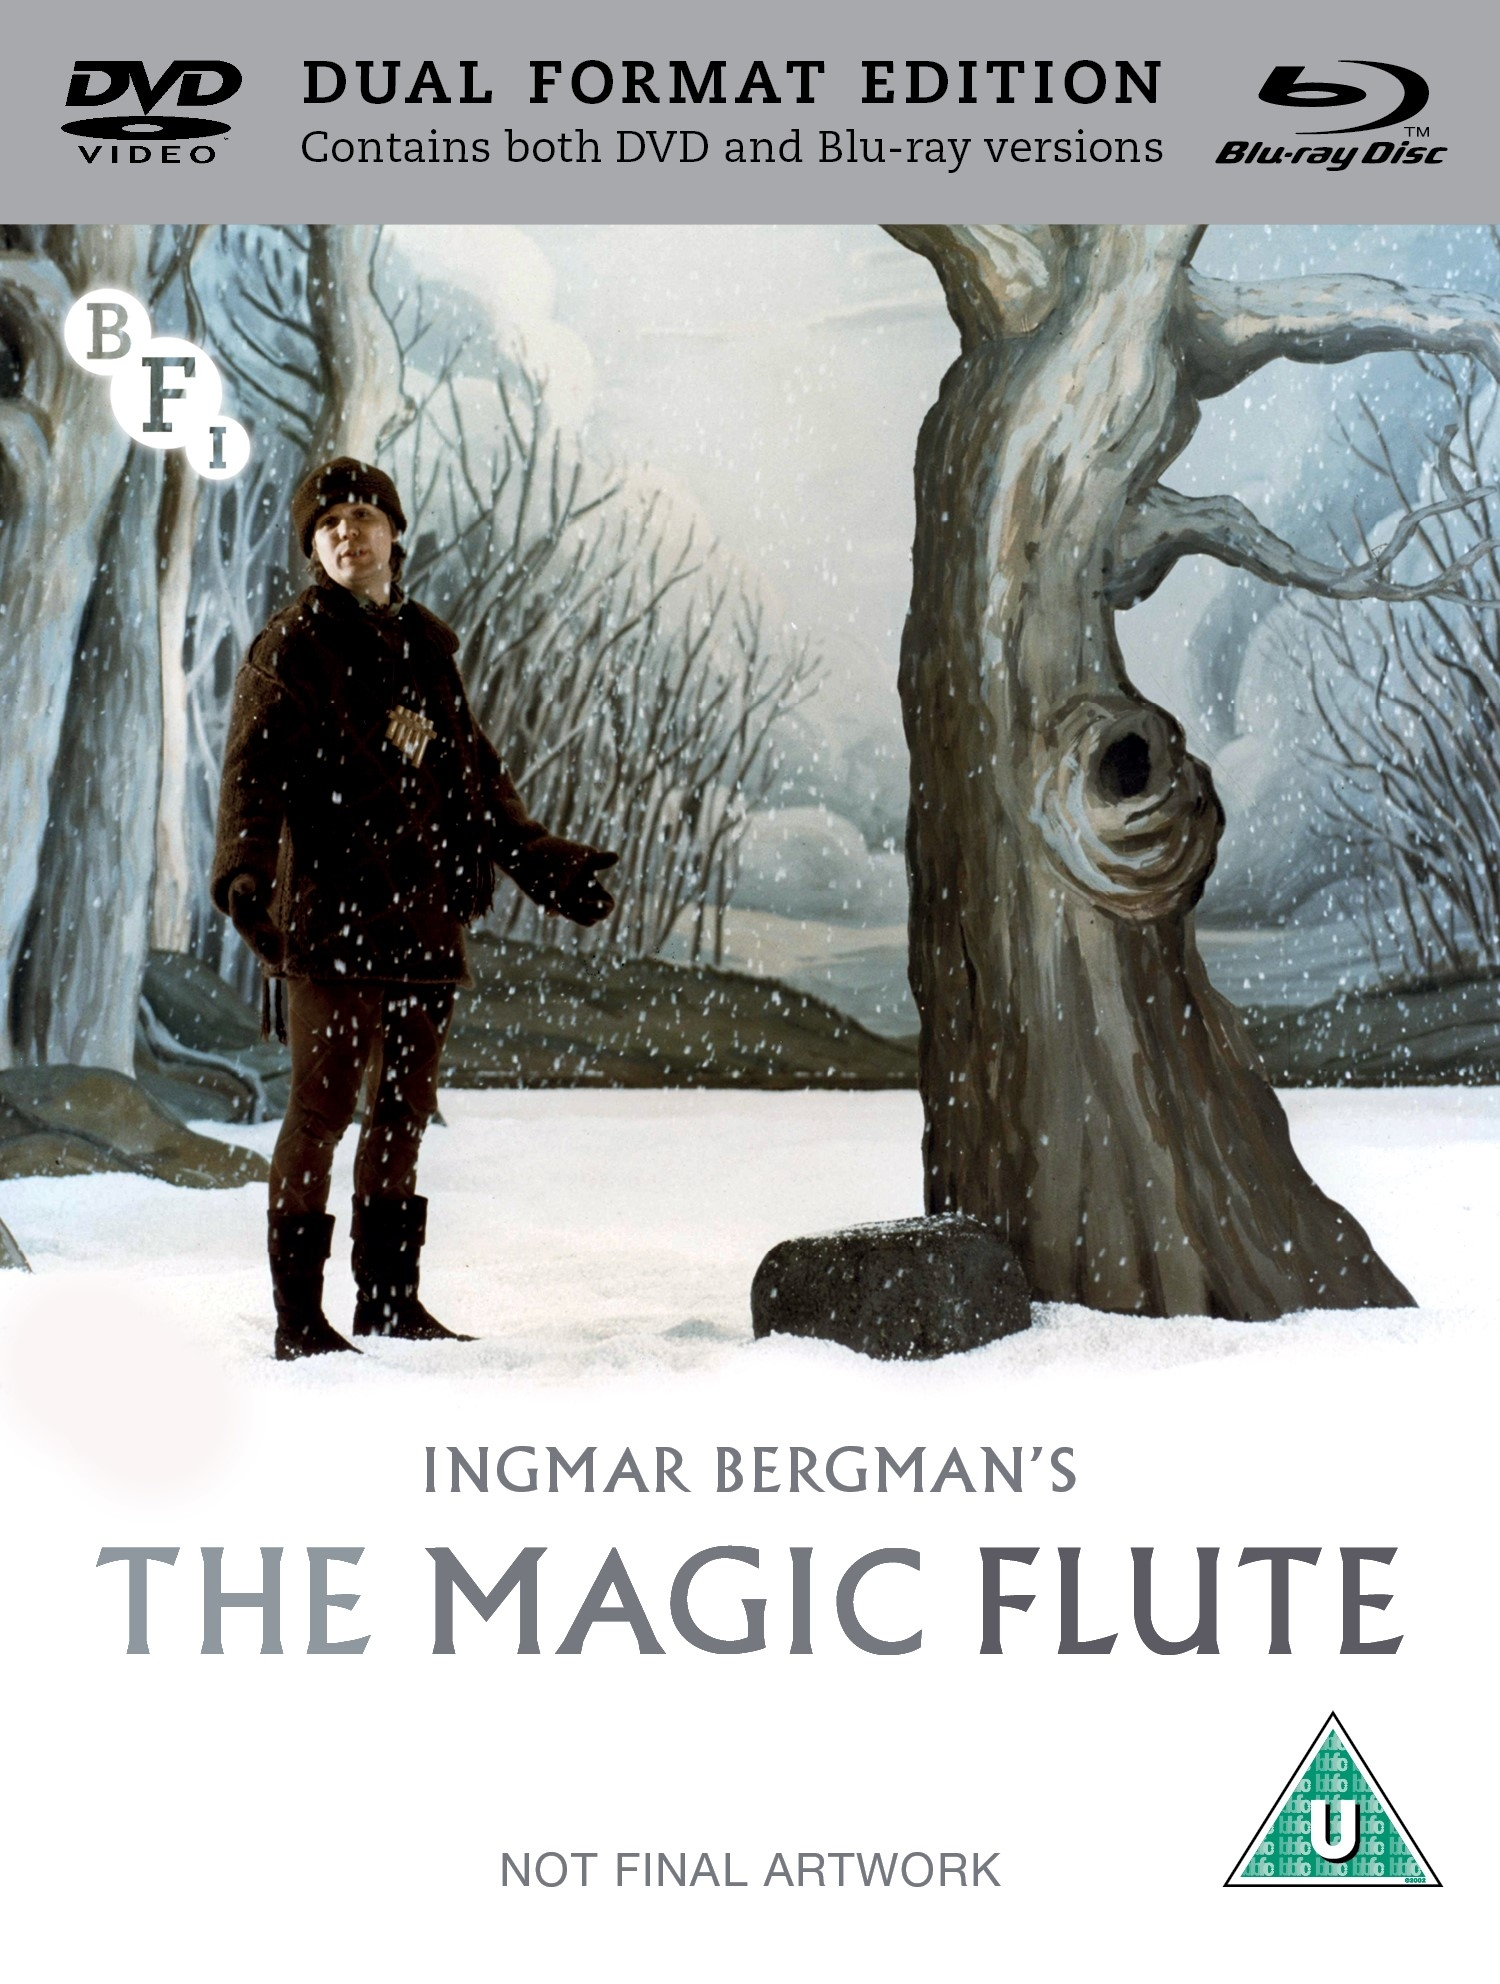 Buy PRE-ORDER The Magic Flute (Dual Format Edition)